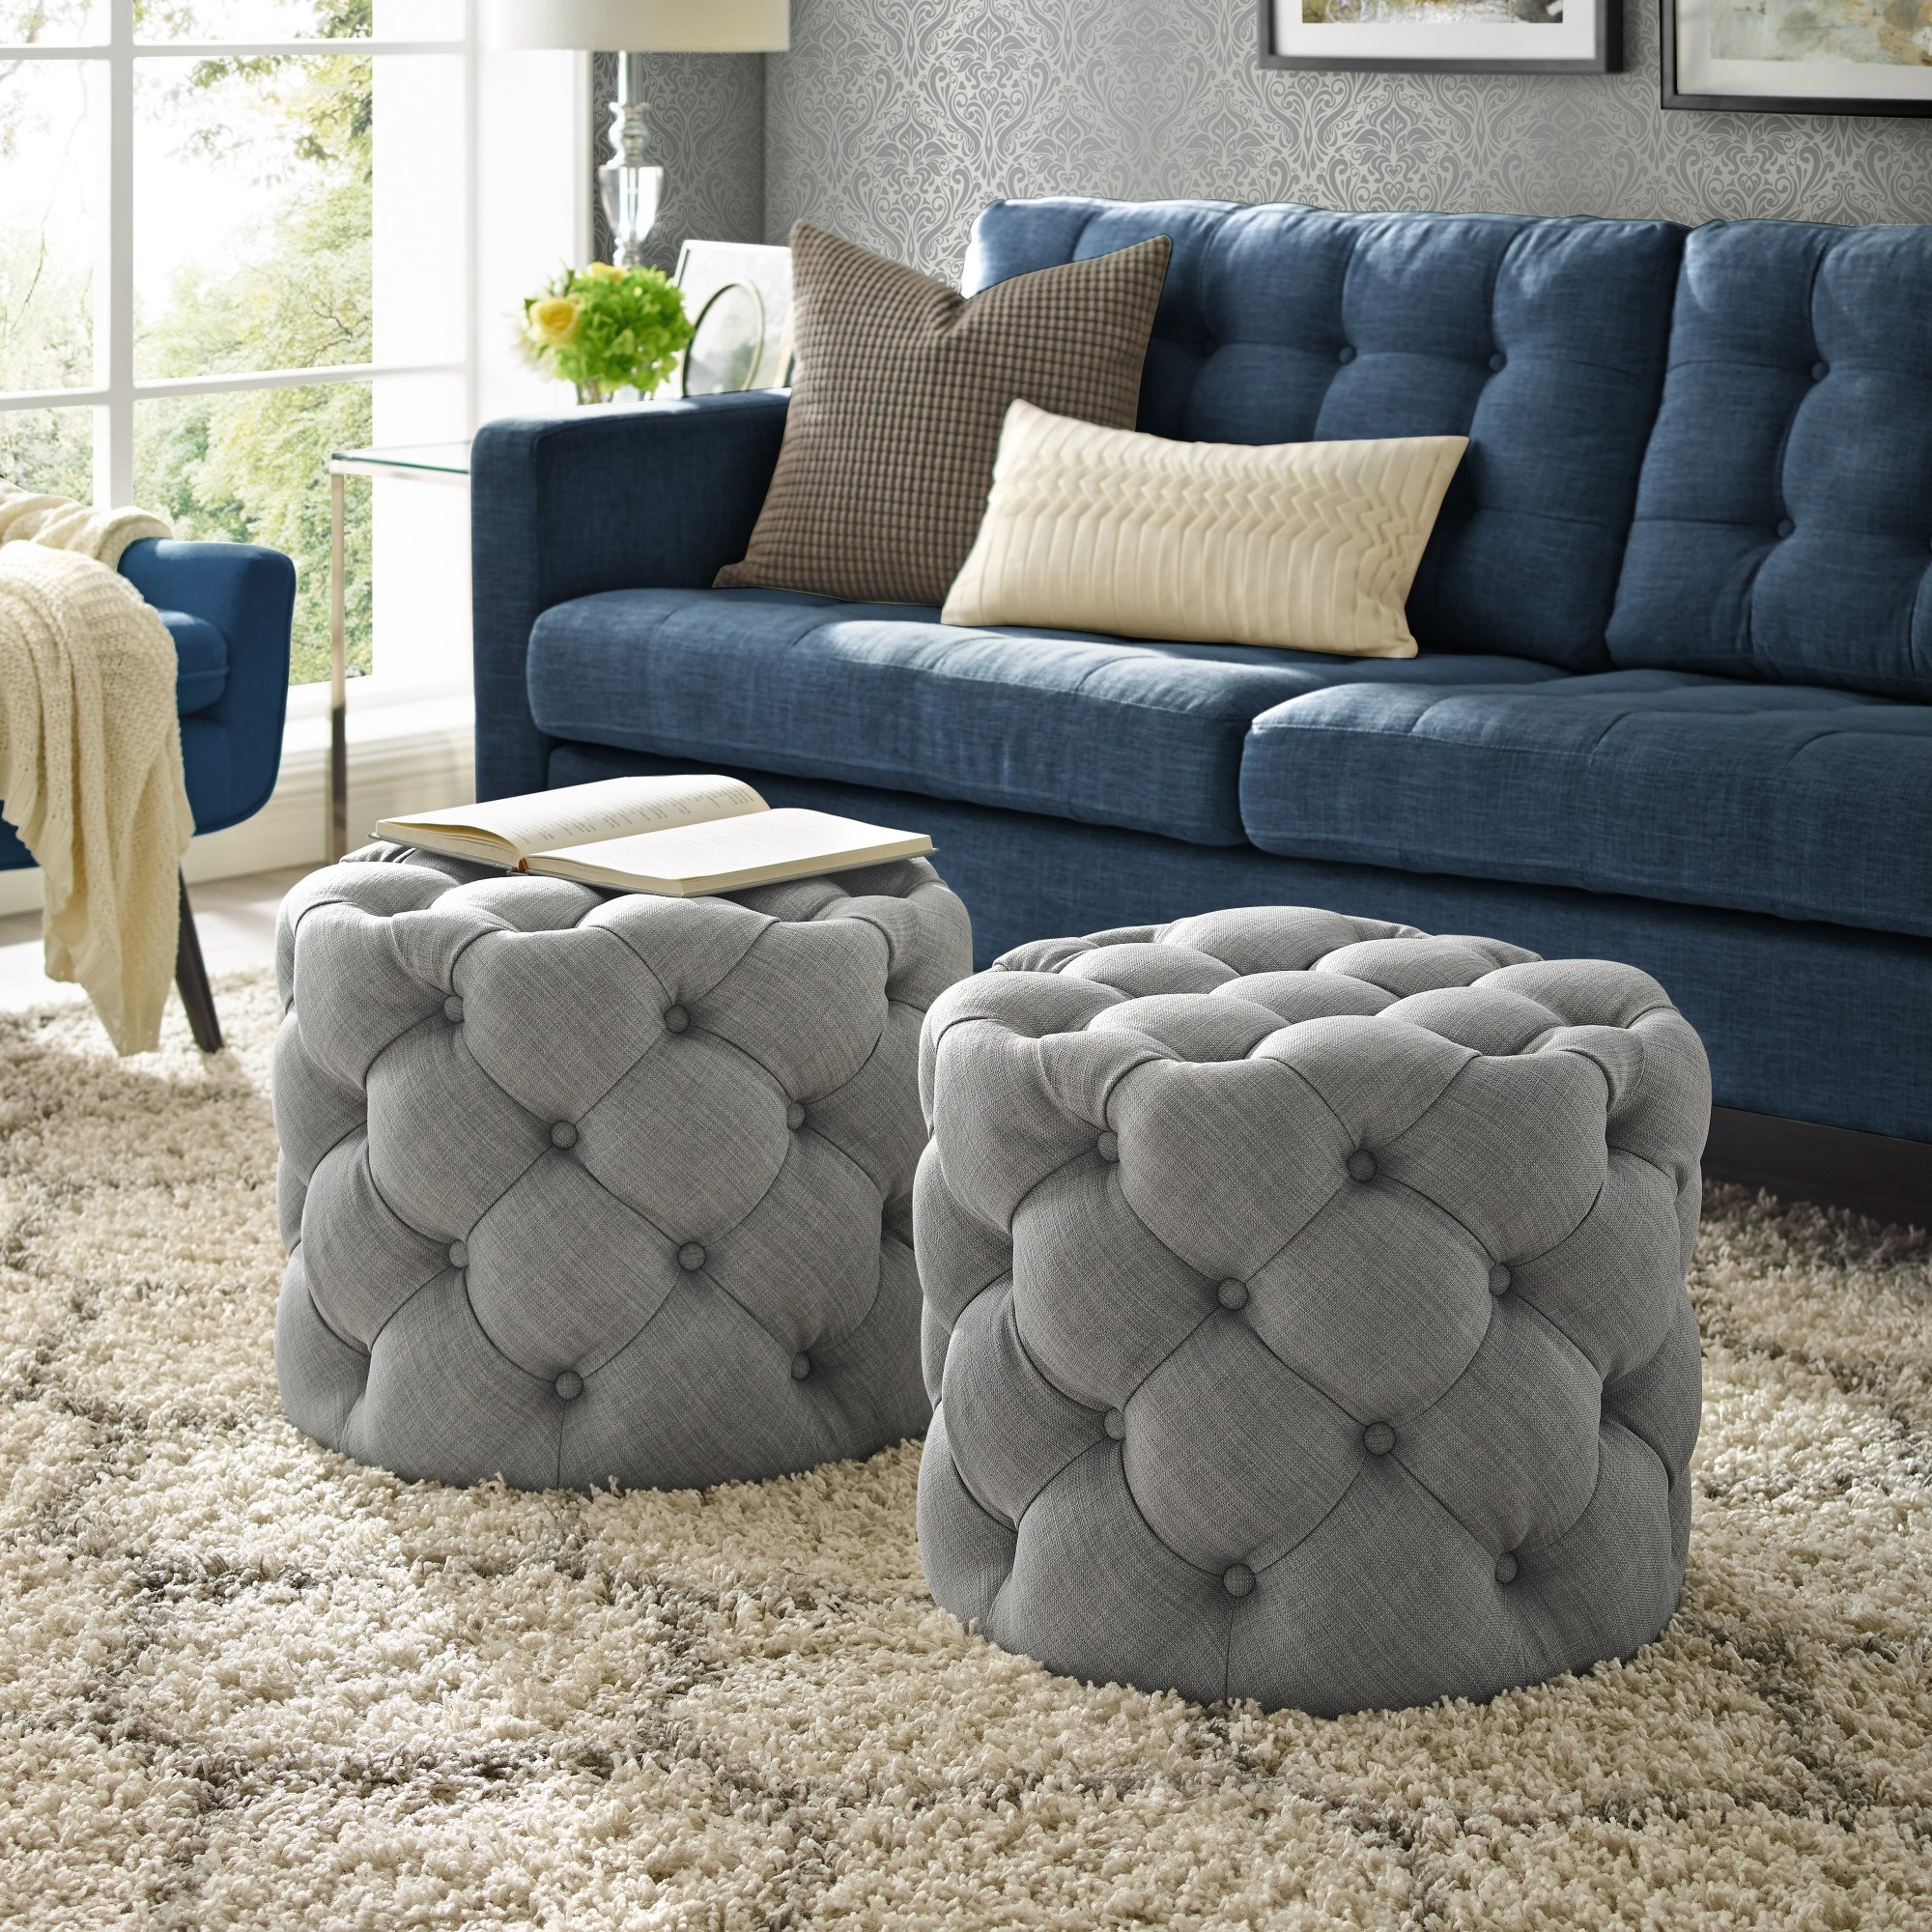 Bedroom Ottoman Storage Bench New Details About Velvet or Linen Tufted Ottoman Bench Foot Stool Fabric Bedroom Round 1 Pc